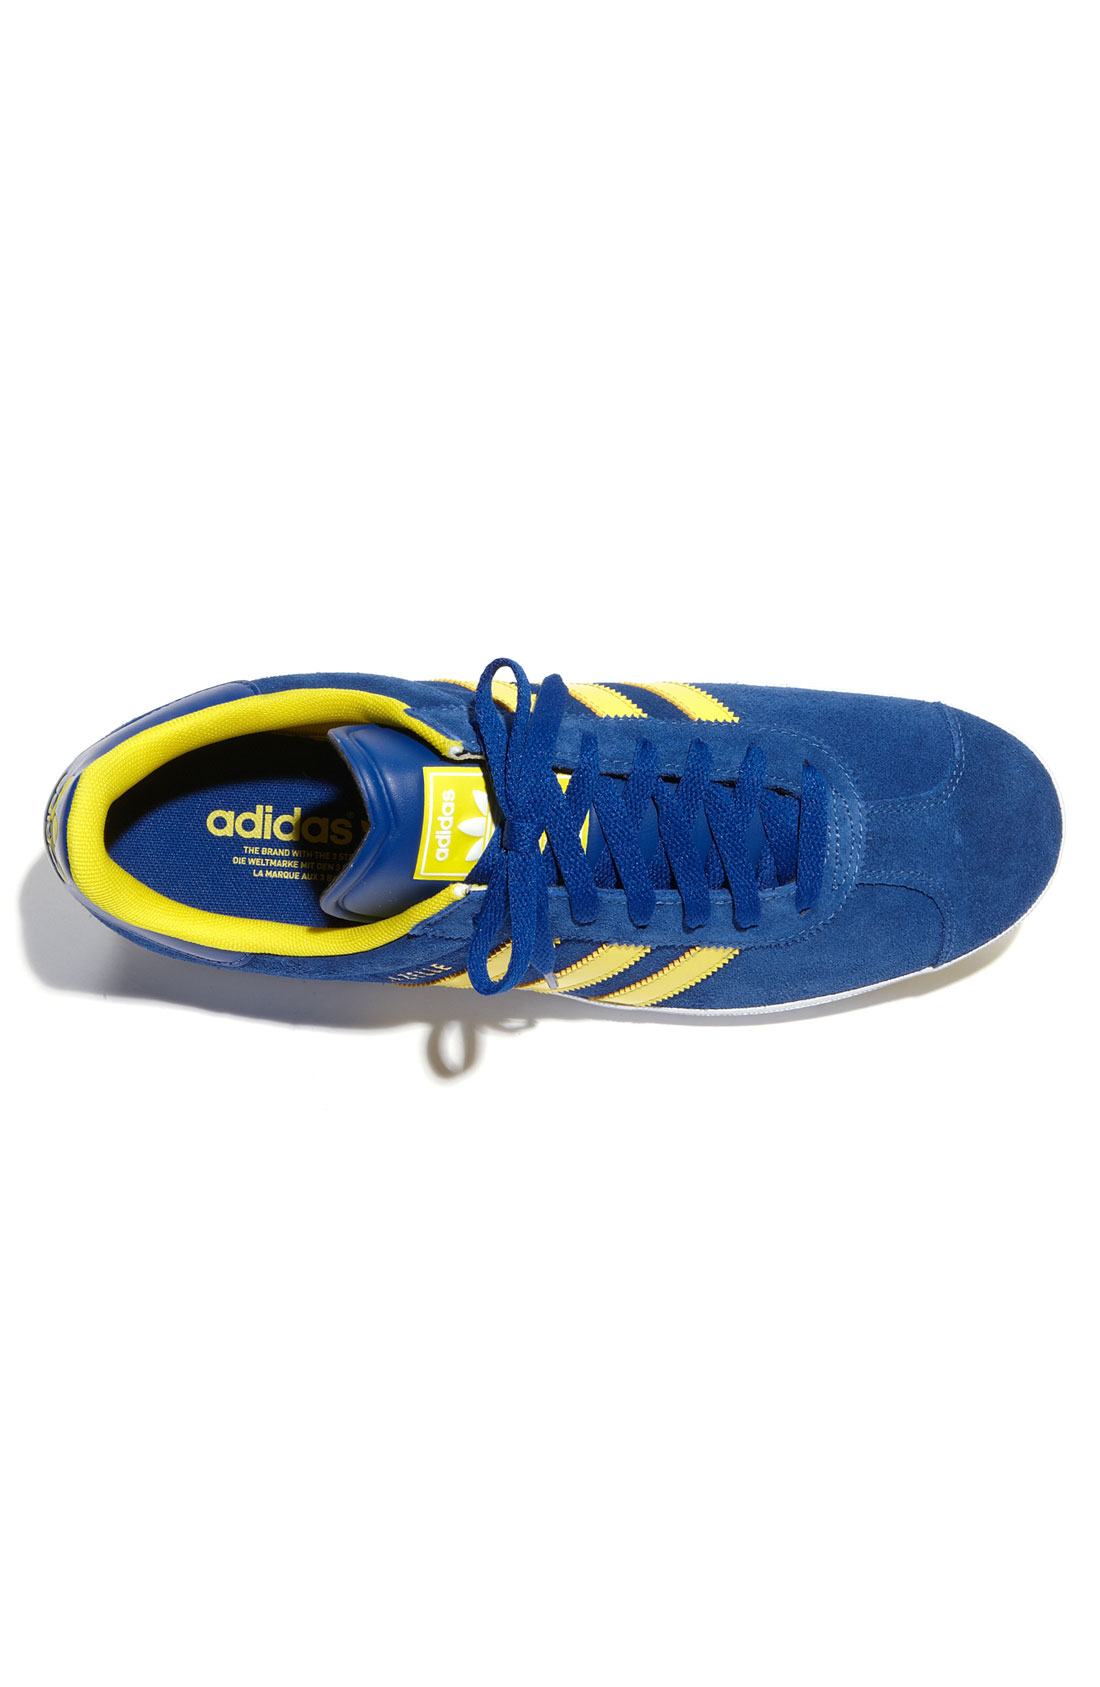 Adidas Gazelle Indoor Black Collegiate Royal White